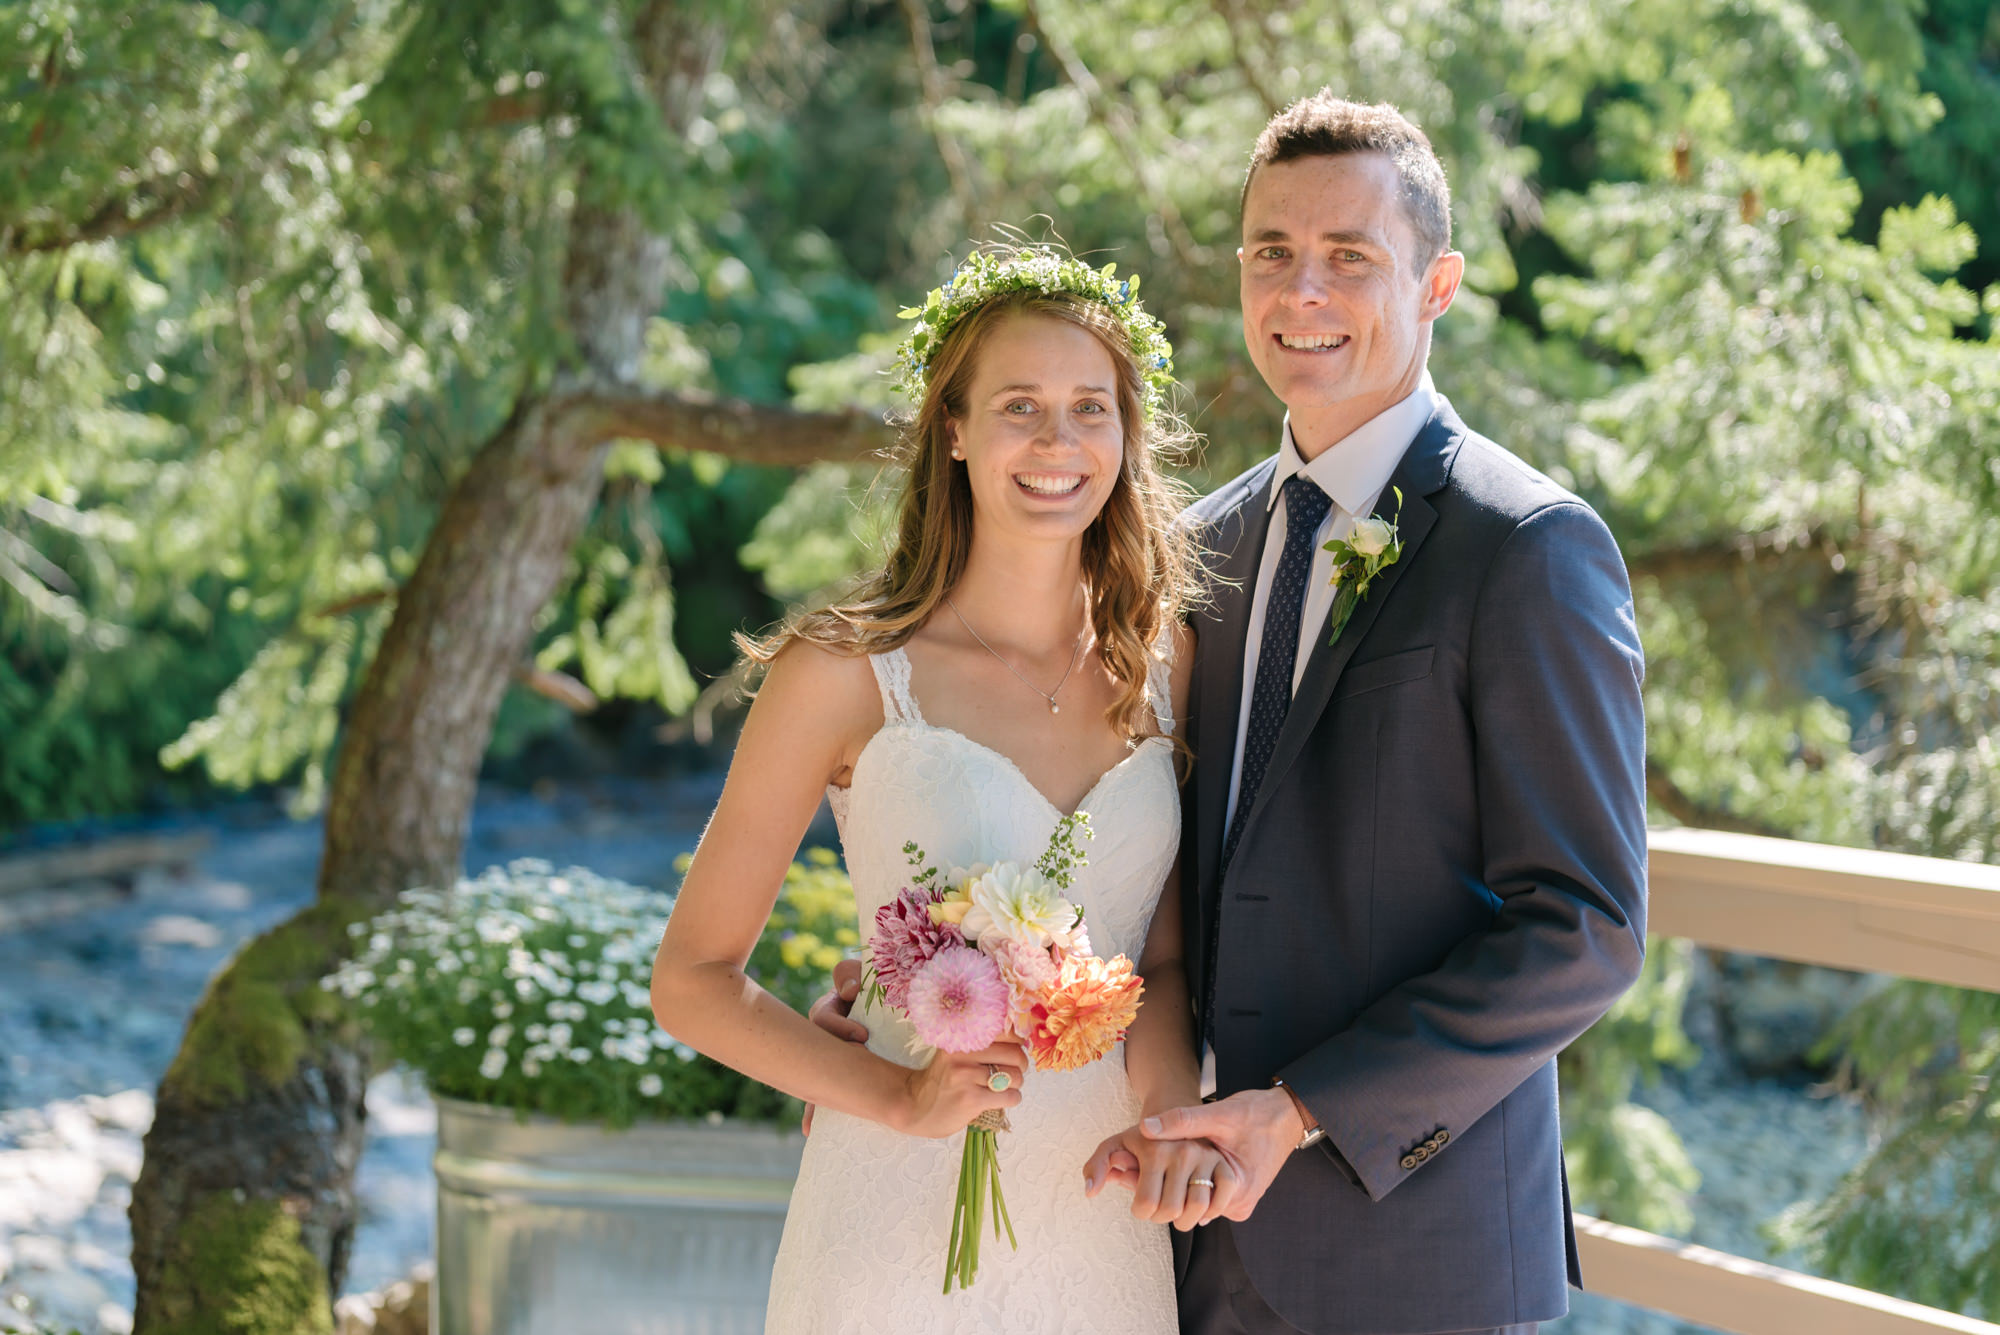 bowen_island_wedding_photographer_vancouver151620_7_kahophotography_weddingphotographer.jpg